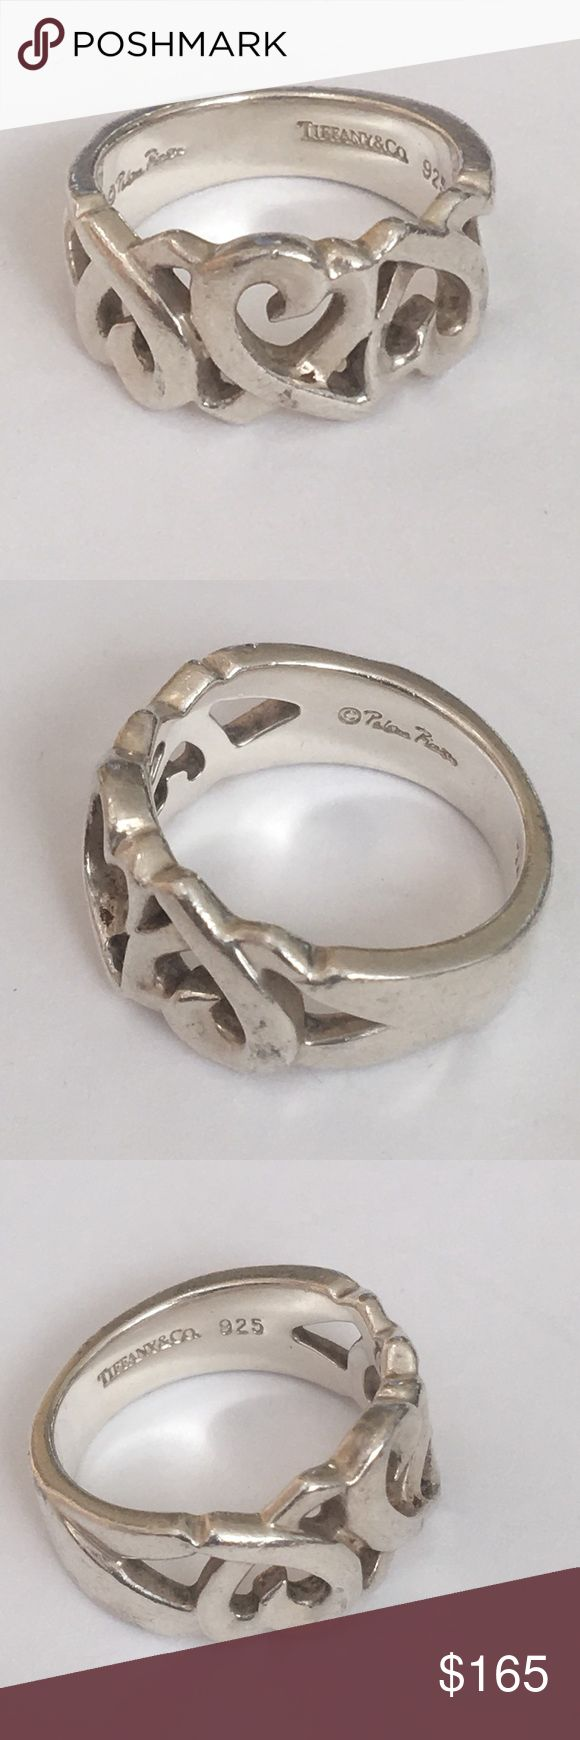 Tiffany Sterling Paloma Picasso Open Heart Ring This is an authentic sterling silver ring design by Paloma Picasso for Tiffany. It is a size 4 1/2 and can be sized by a jeweler, but that will cut into the hallmarks in the back of the ring. The ring is marked Tiffany and Company, 925, and Paloma Picasso. This is currently available on Tiffany's website for $200. Tiffany & Co. Jewelry Rings